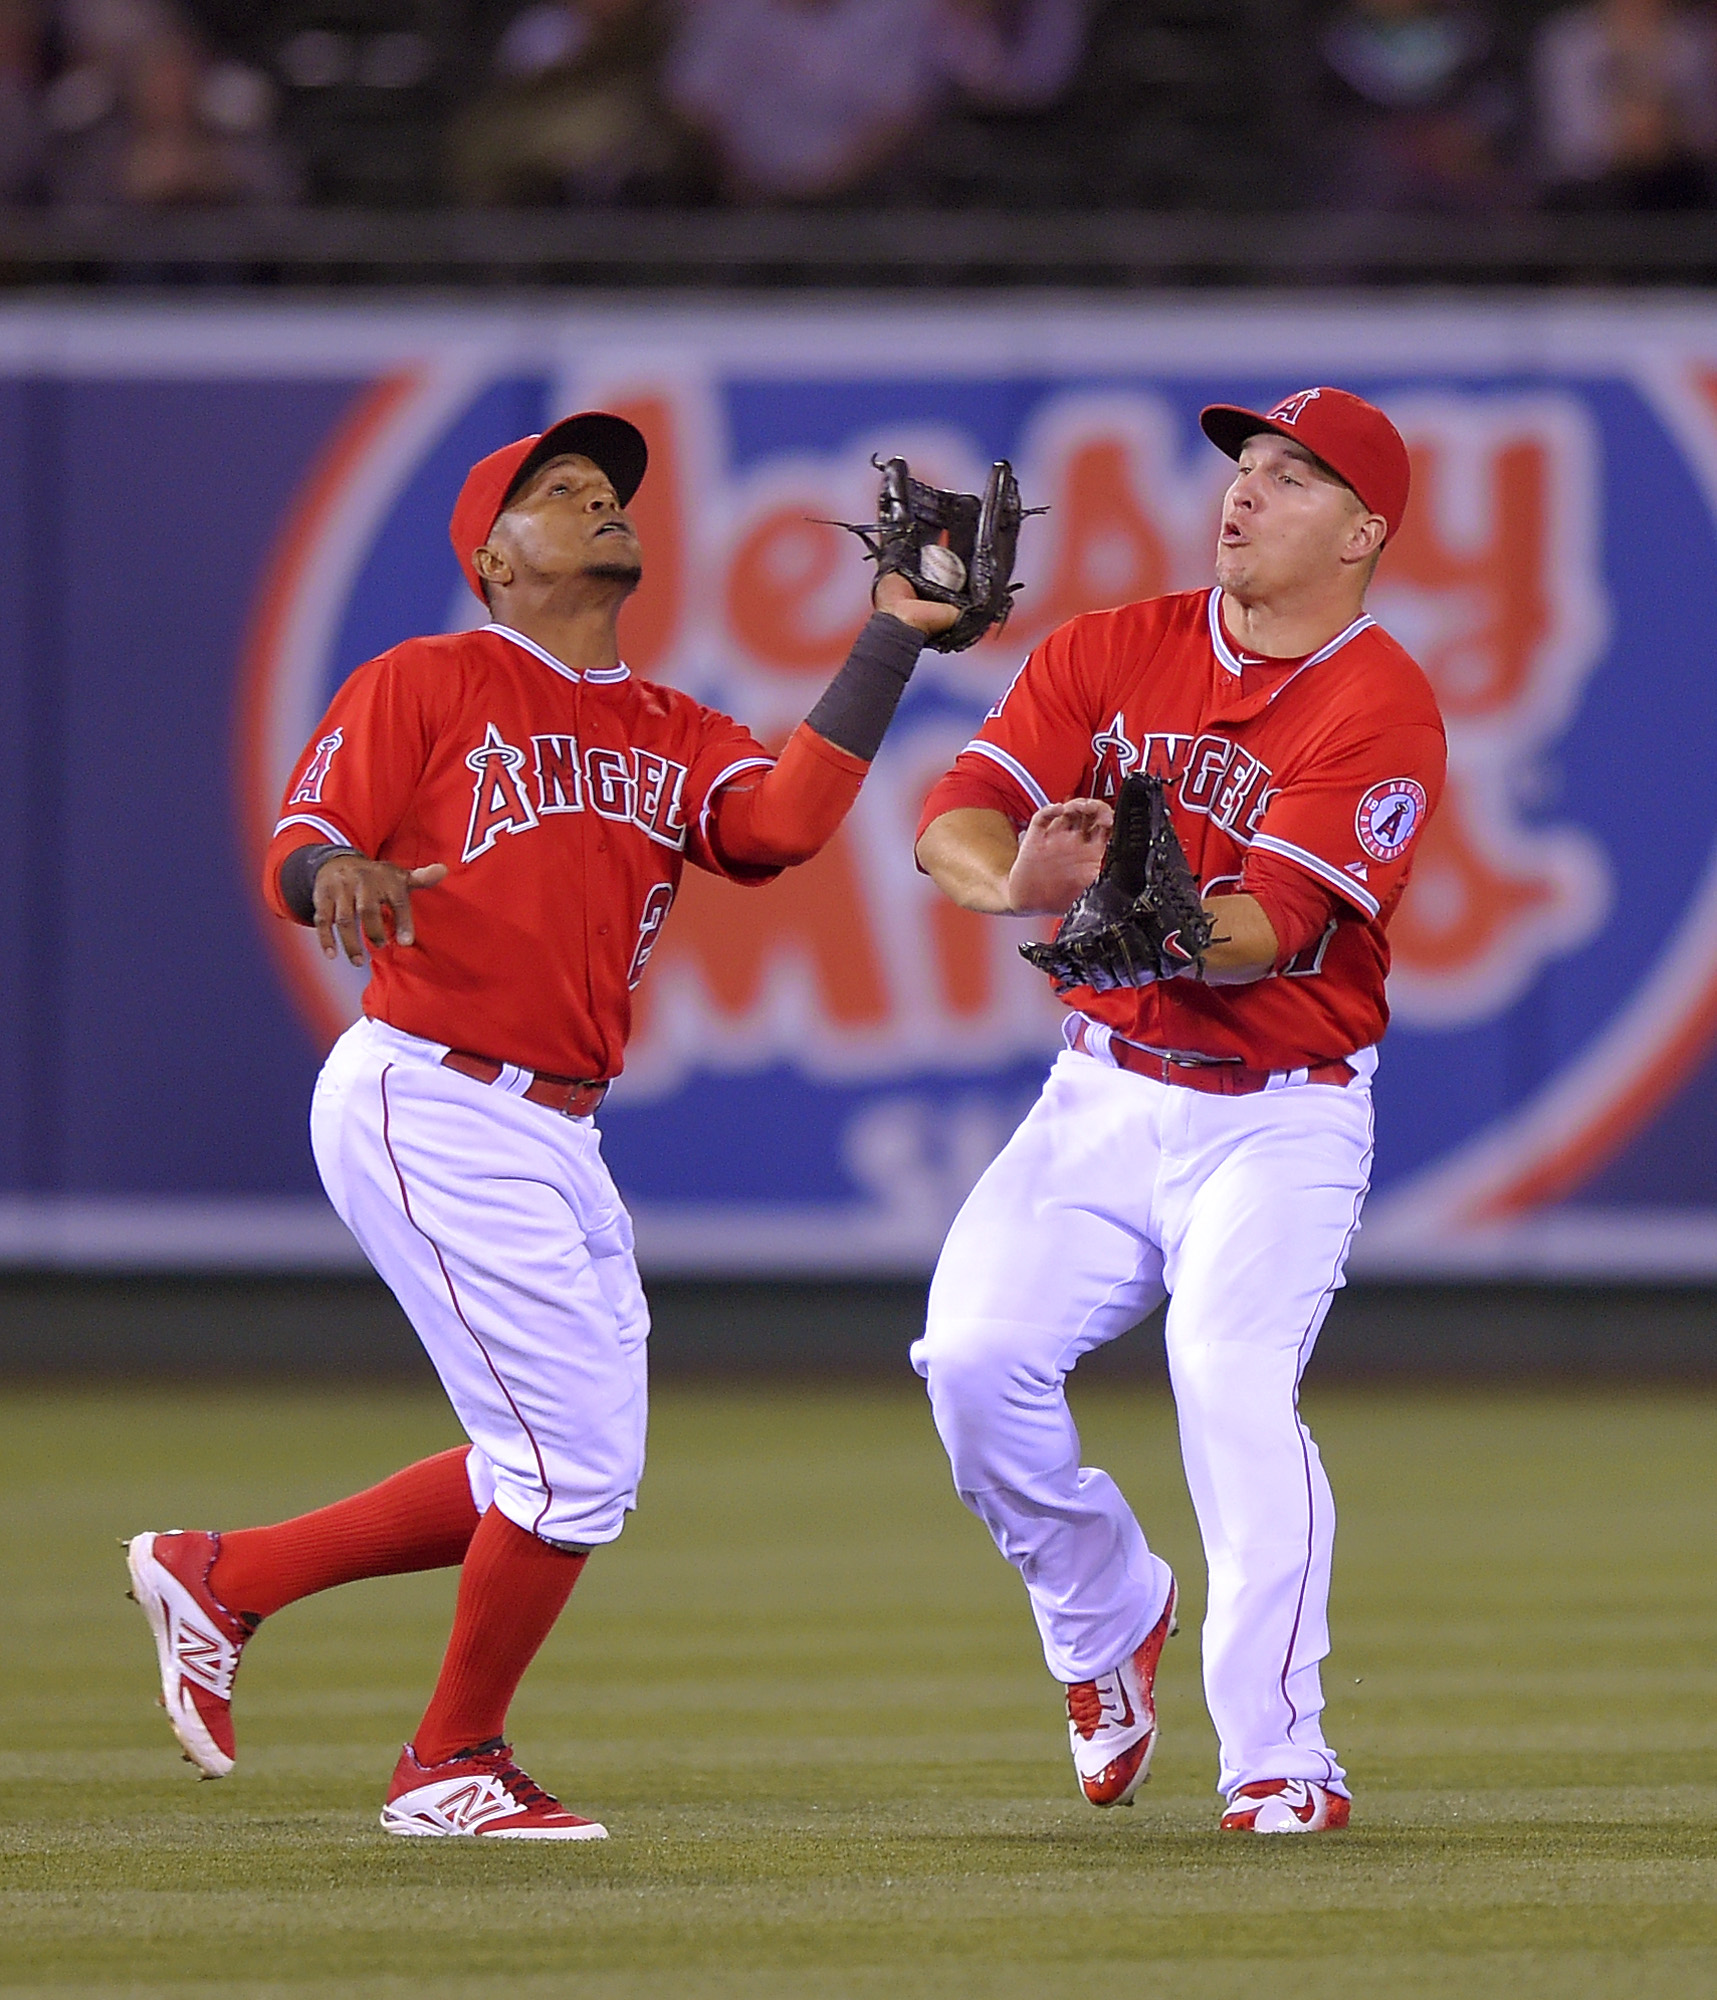 Los Angeles Angels shortstop Erick Aybar, left, makes a catch on a ball hit by Seattle Mariners' Mike Zunino before almost colliding with Mike Trout during the sixth inning of a baseball game, Wednesday, May 6, 2015, in Anaheim, Calif. (AP Photo/Mark J. T